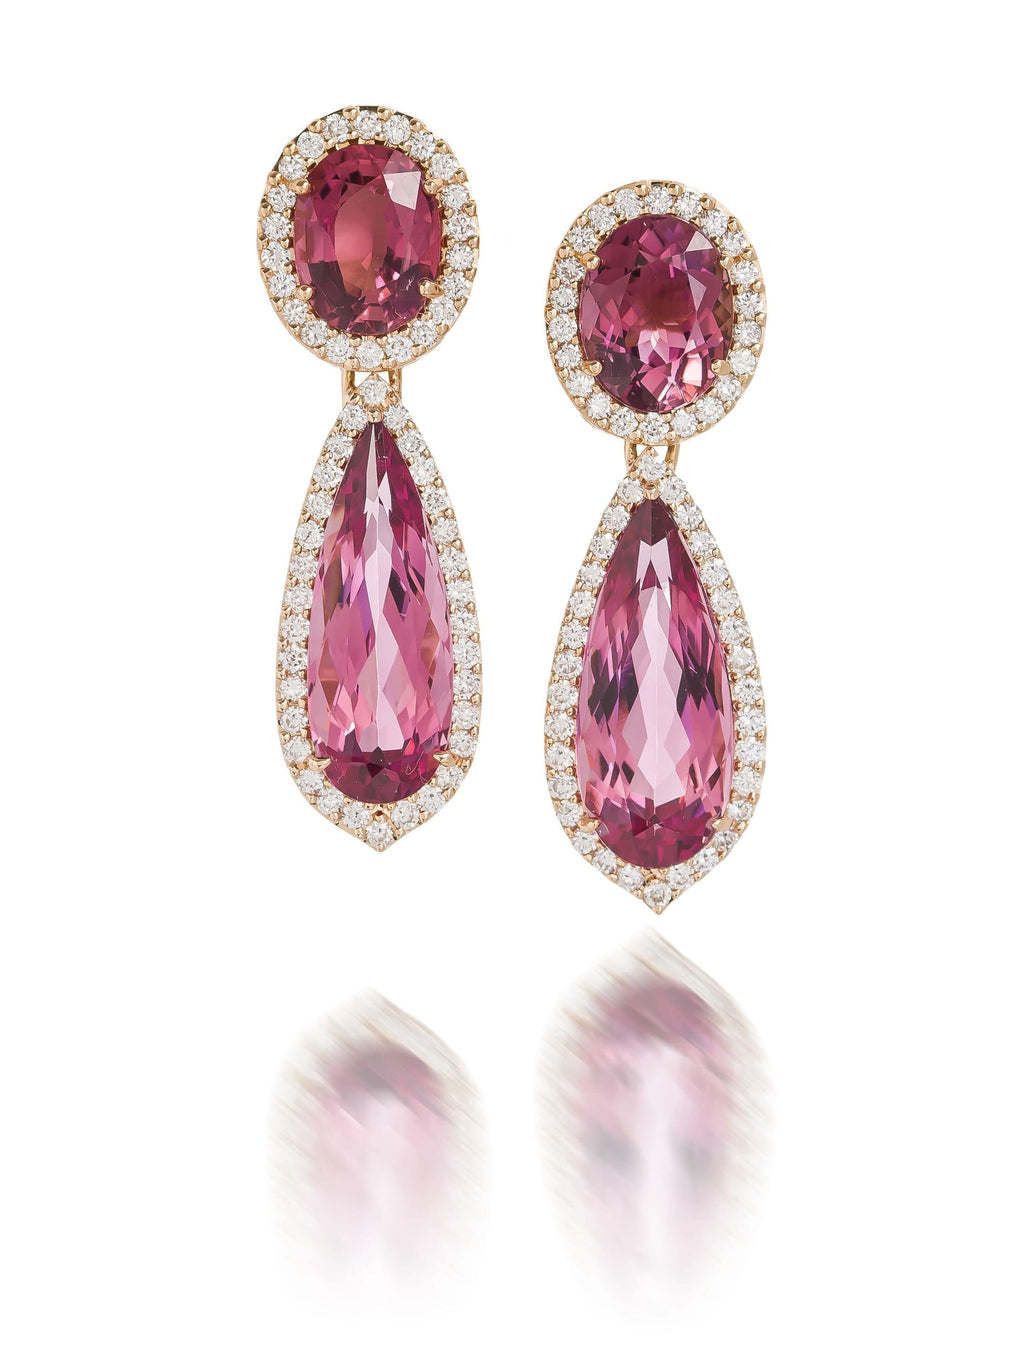 Pink Tourmaline & Diamond Halo Drop Earrings